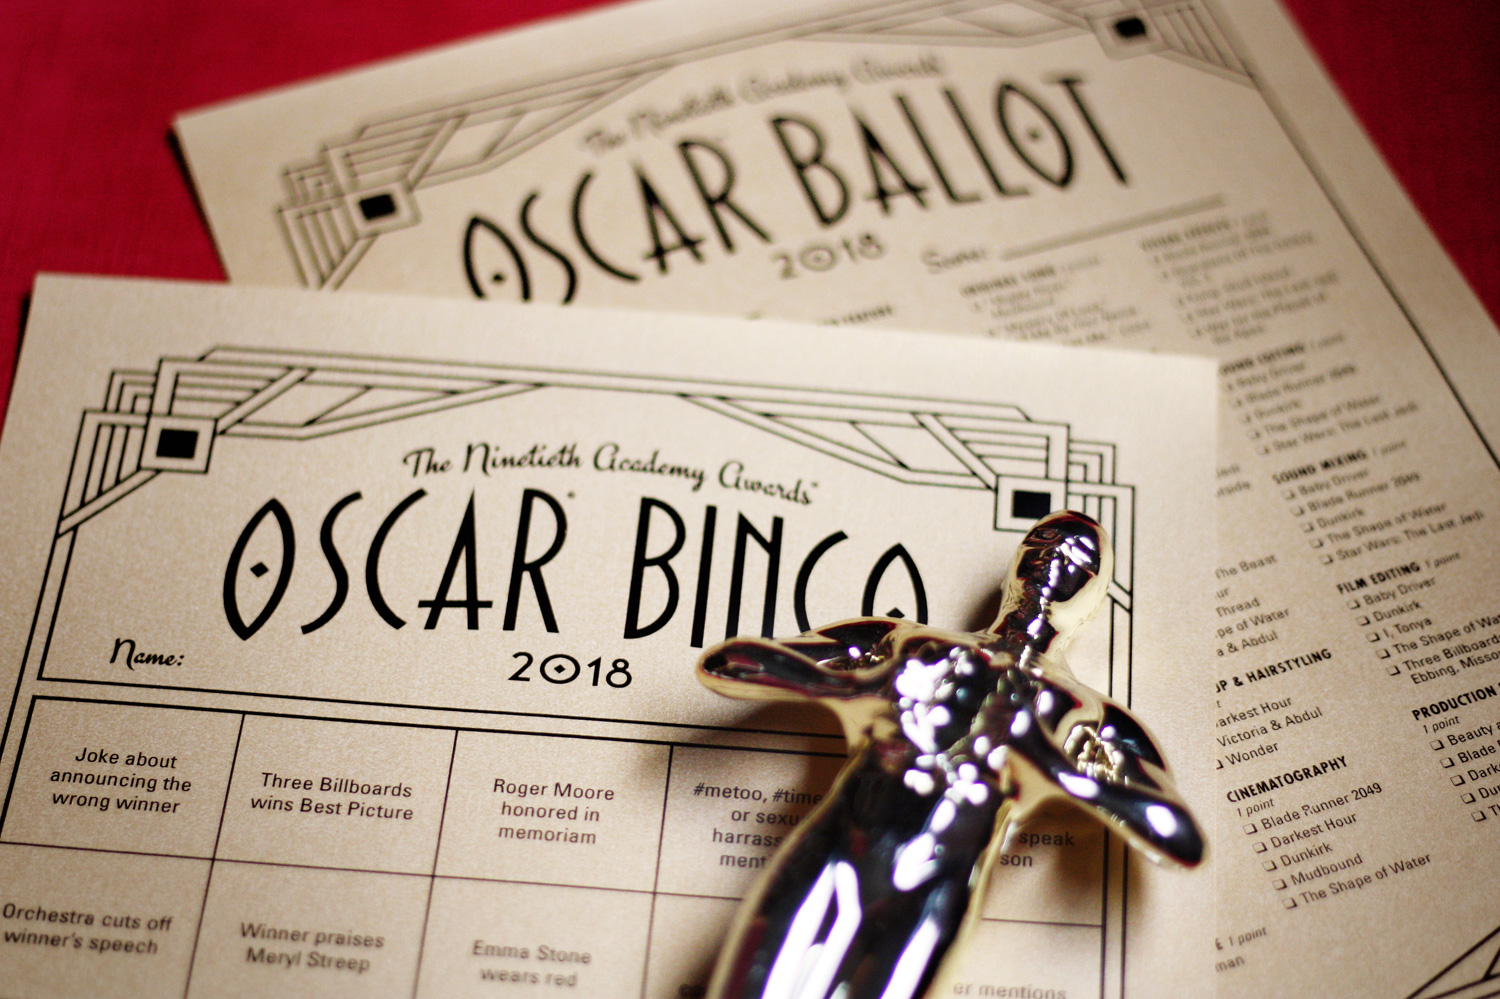 photograph relating to Oscar Ballots Printable titled Oscar bingo 2018 is prepared toward print No cost printable Oscar